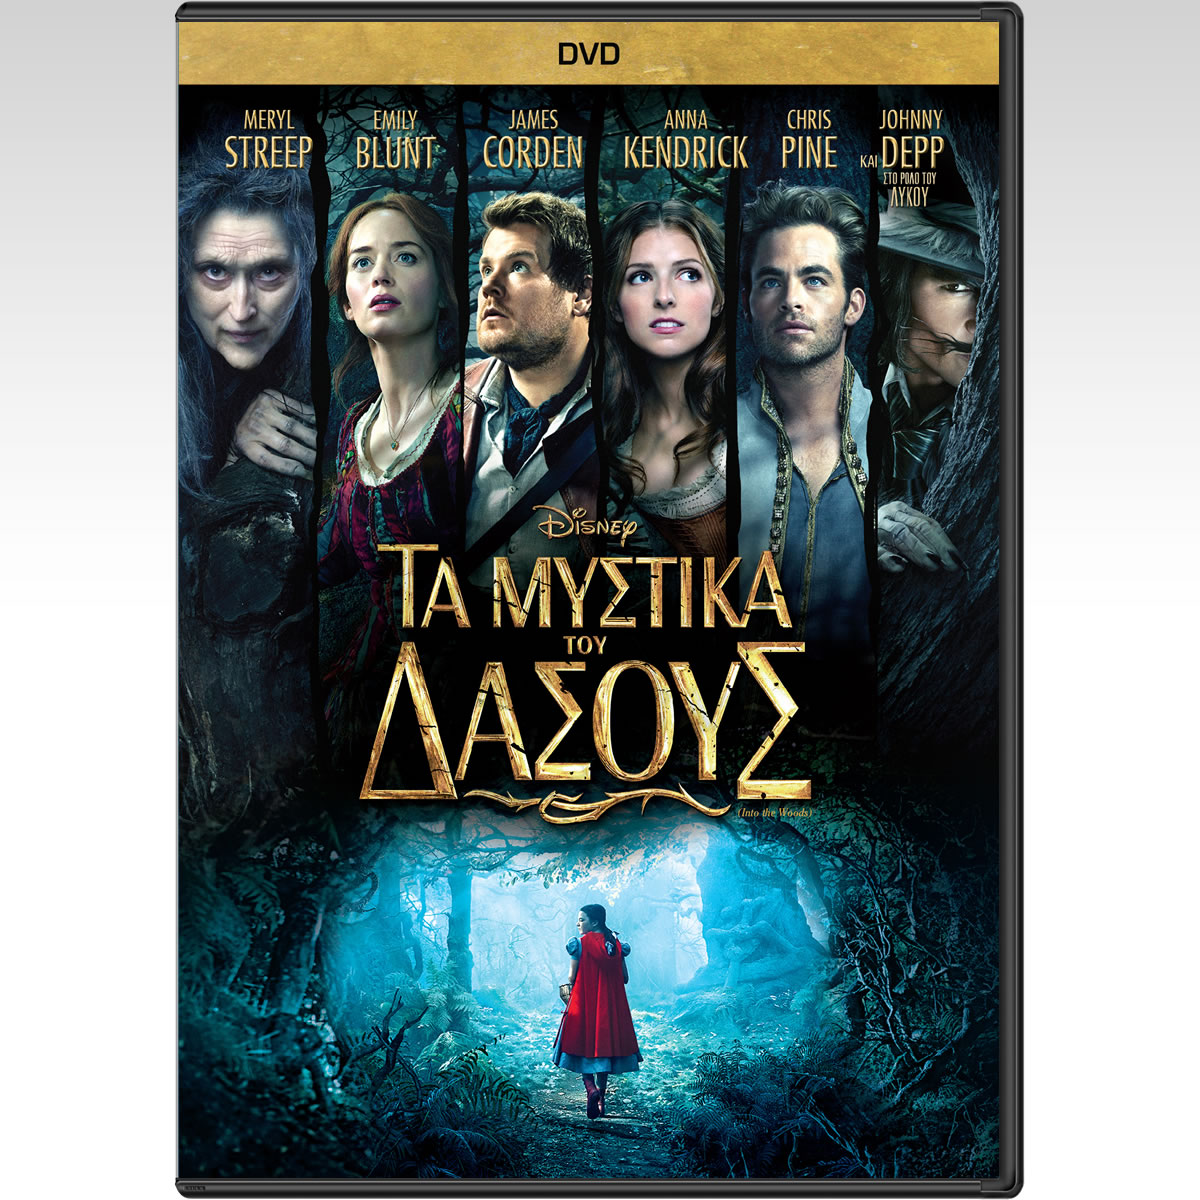 INTO THE WOODS - ΤΑ ΜΥΣΤΙΚΑ ΤΟΥ ΔΑΣΟΥΣ (DVD)